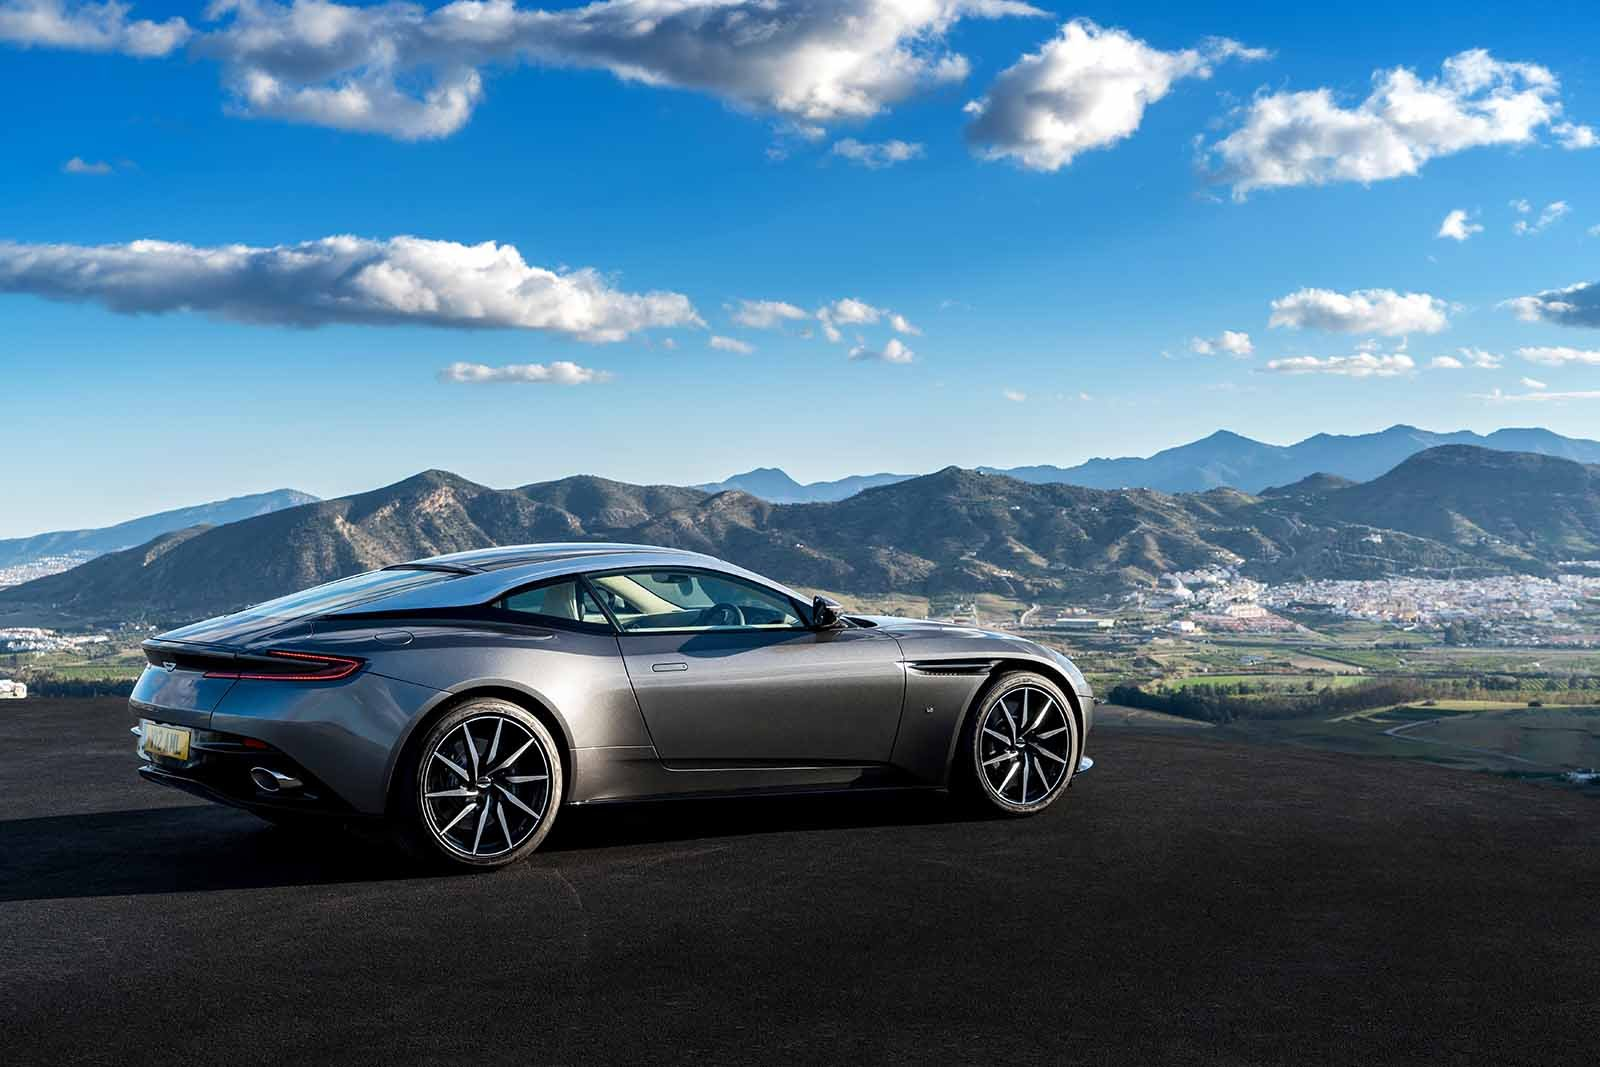 The Aston Martin DB11